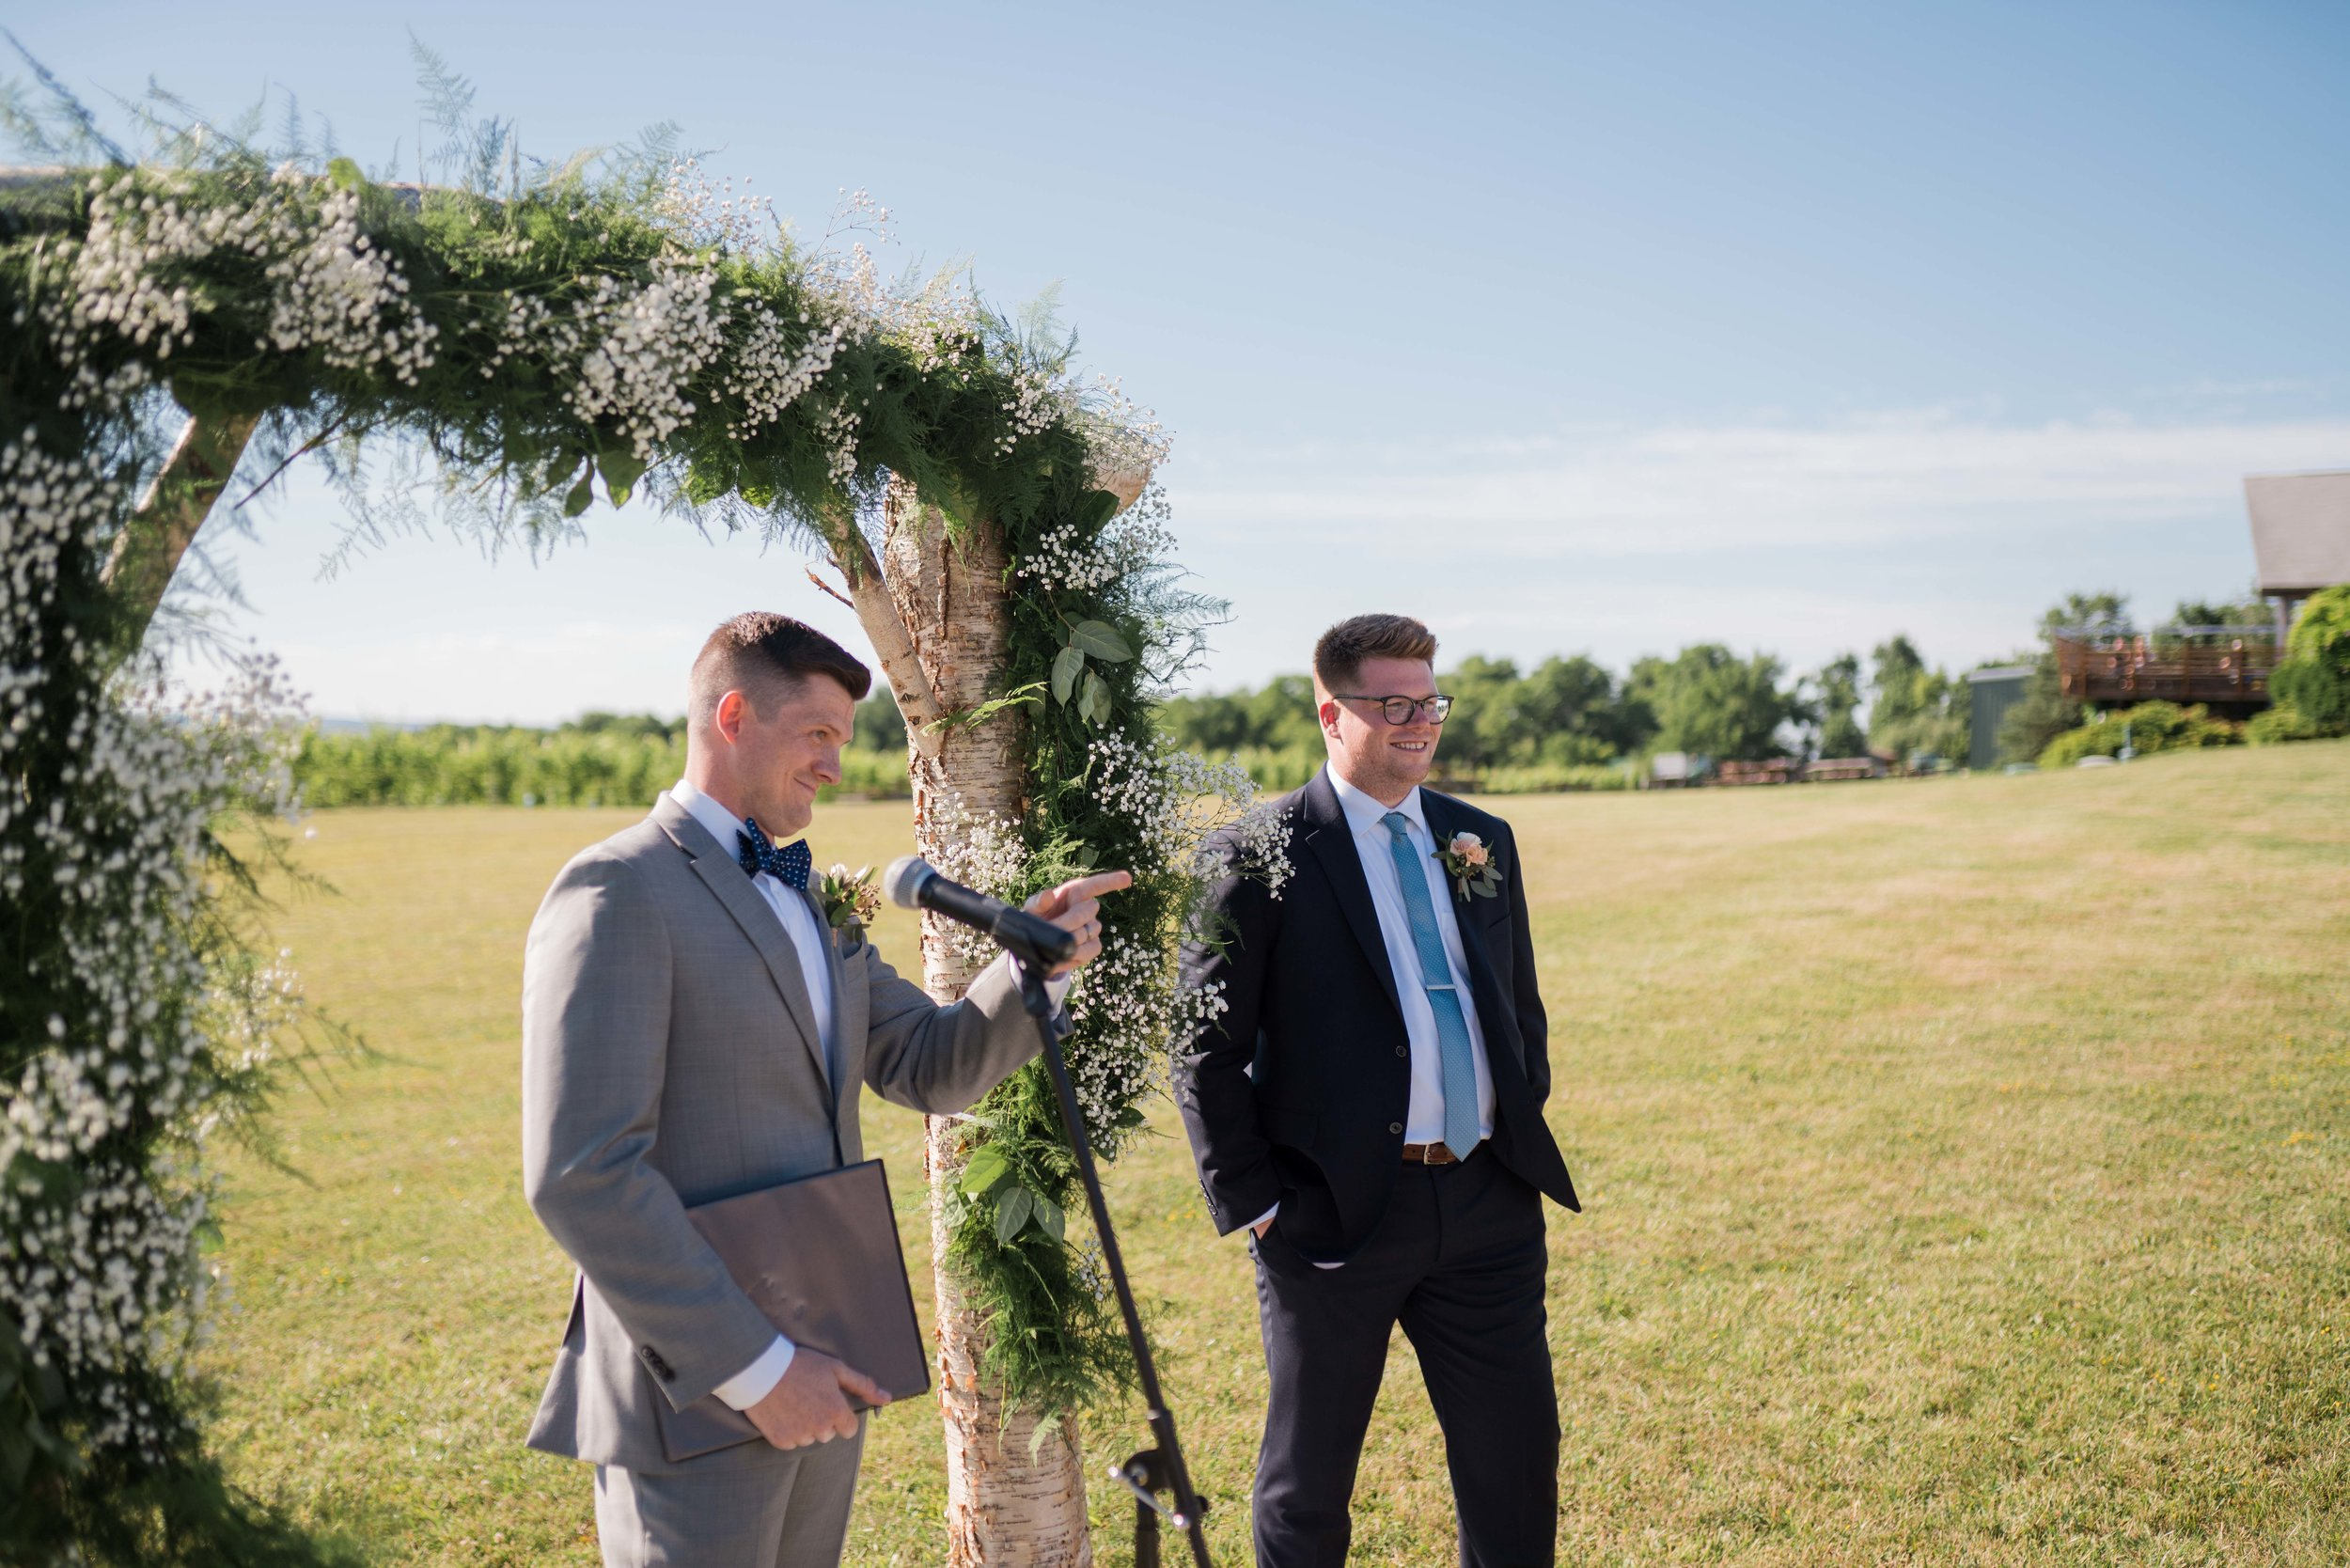 Wedding Photography at Wagner Vineyards Ginny Lee Cafe Finger Lakes by Stefan Ludwig Photography-54.jpg